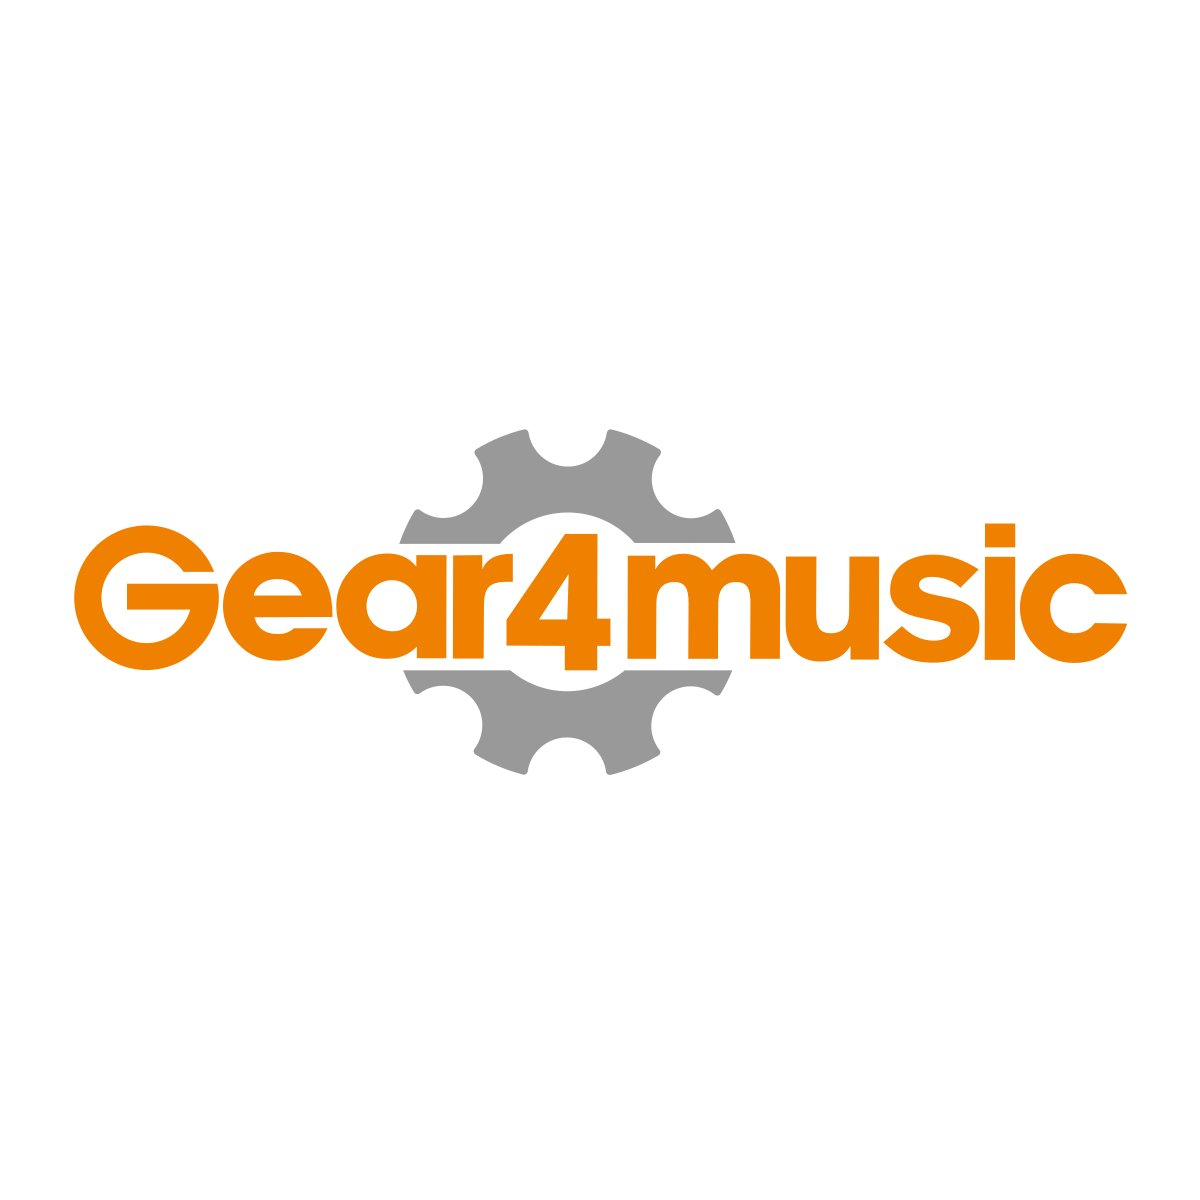 frequency central product modular synth at gear4music. Black Bedroom Furniture Sets. Home Design Ideas